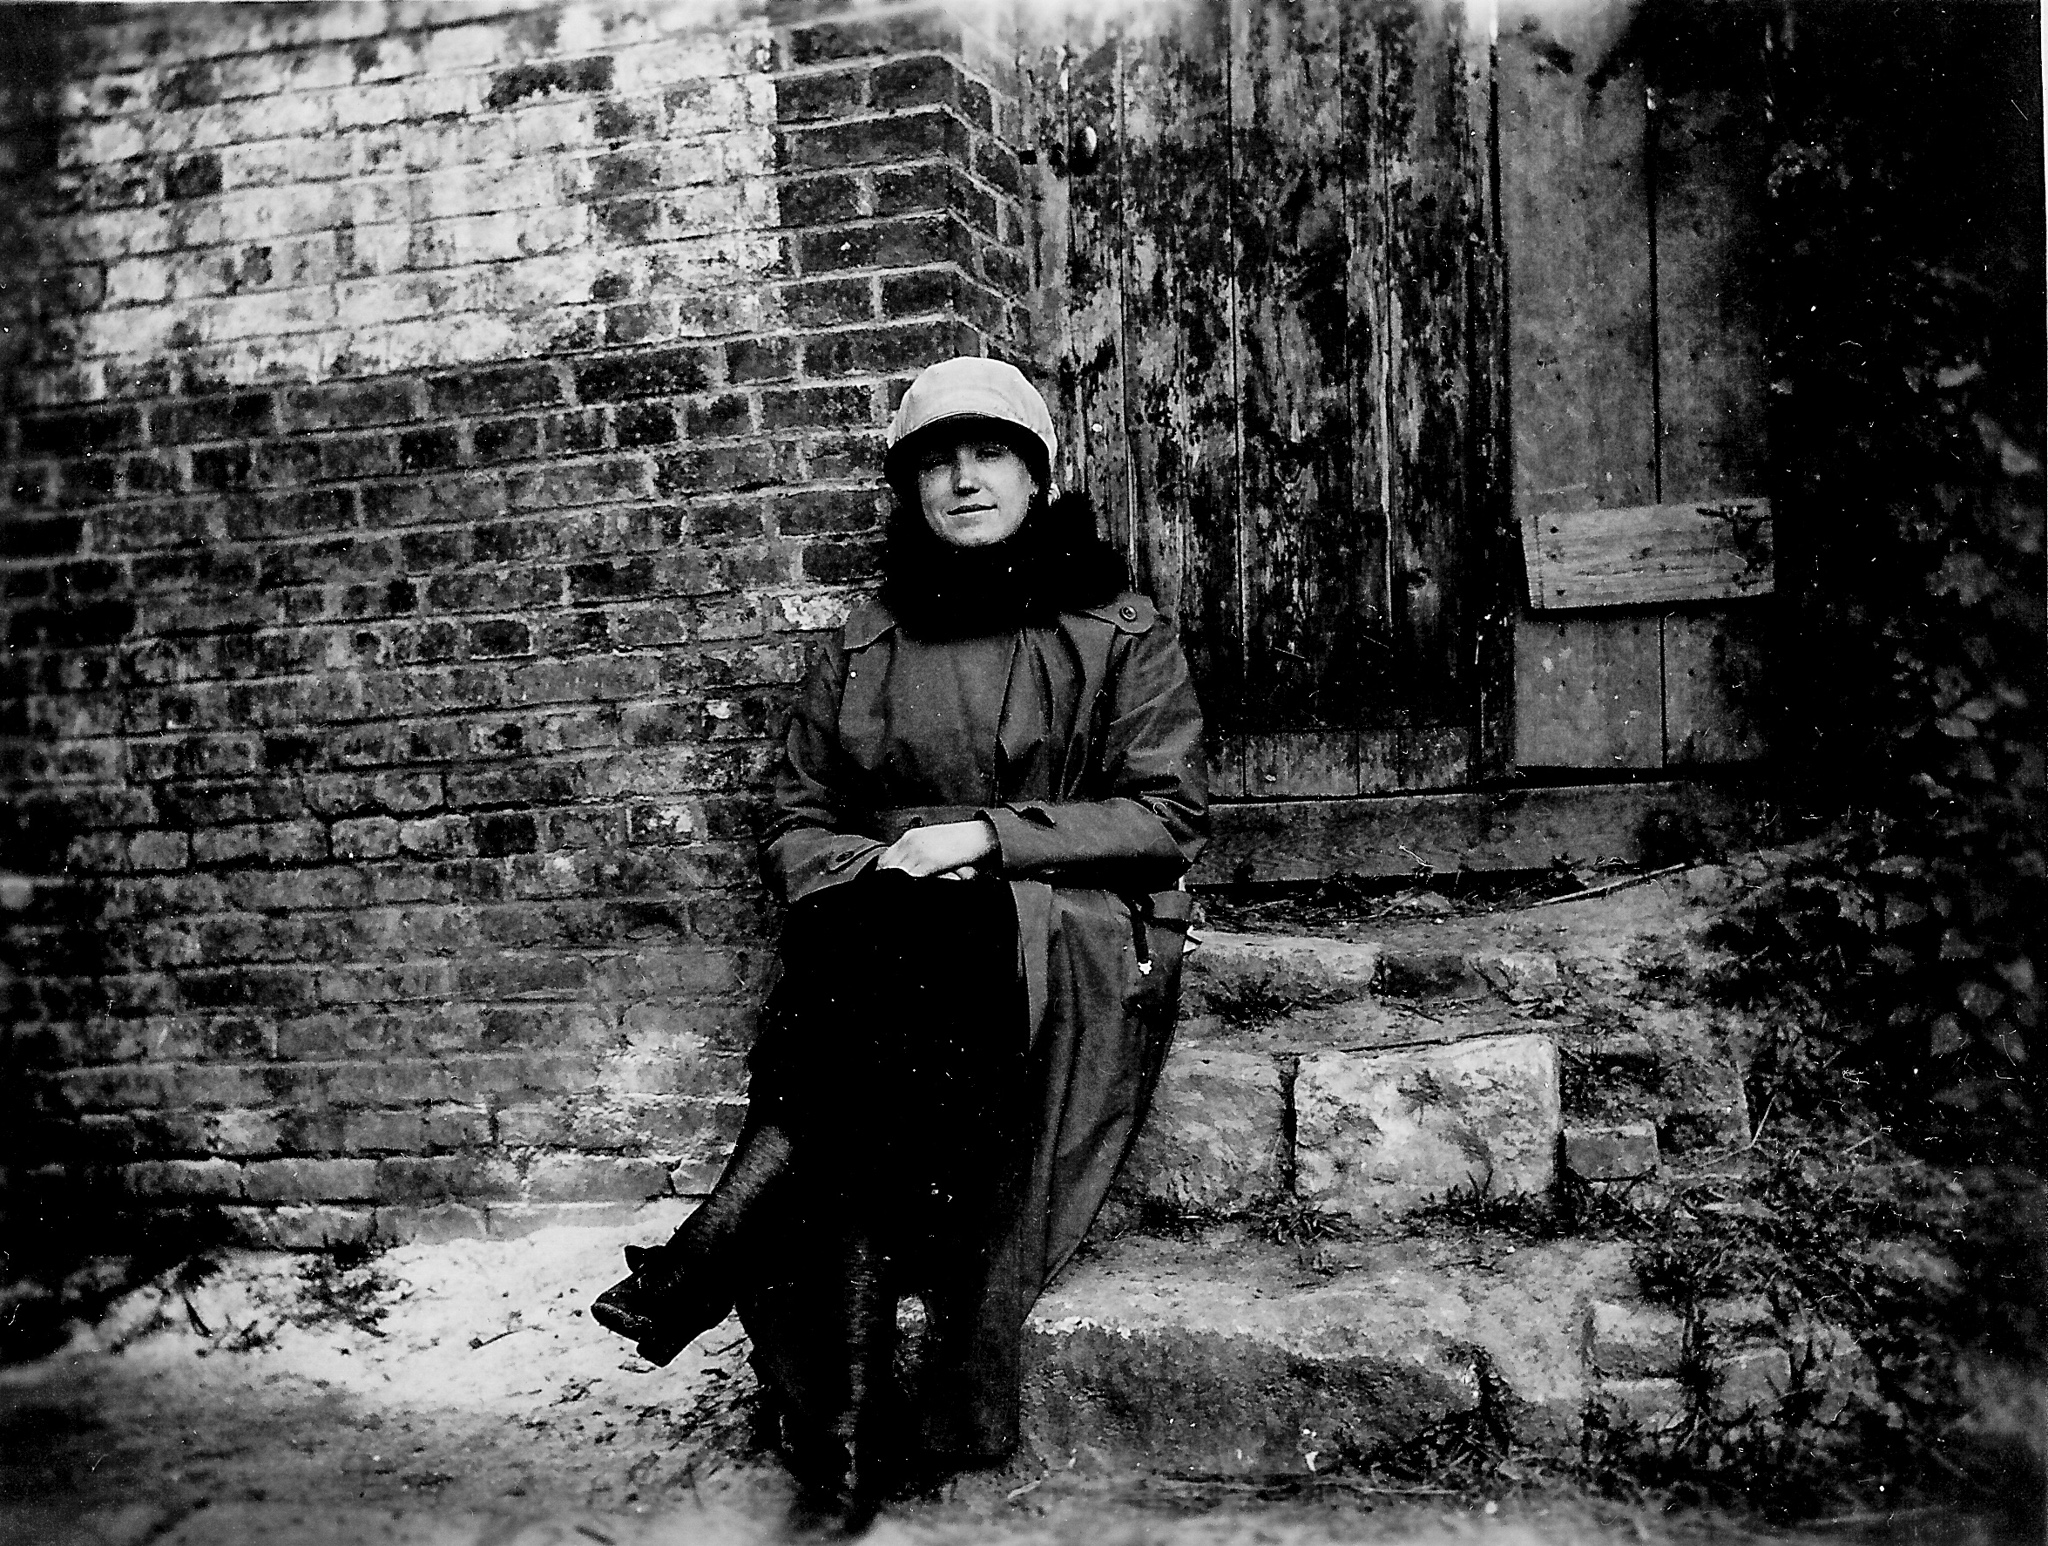 black and white photo of a woman seated on stone steps